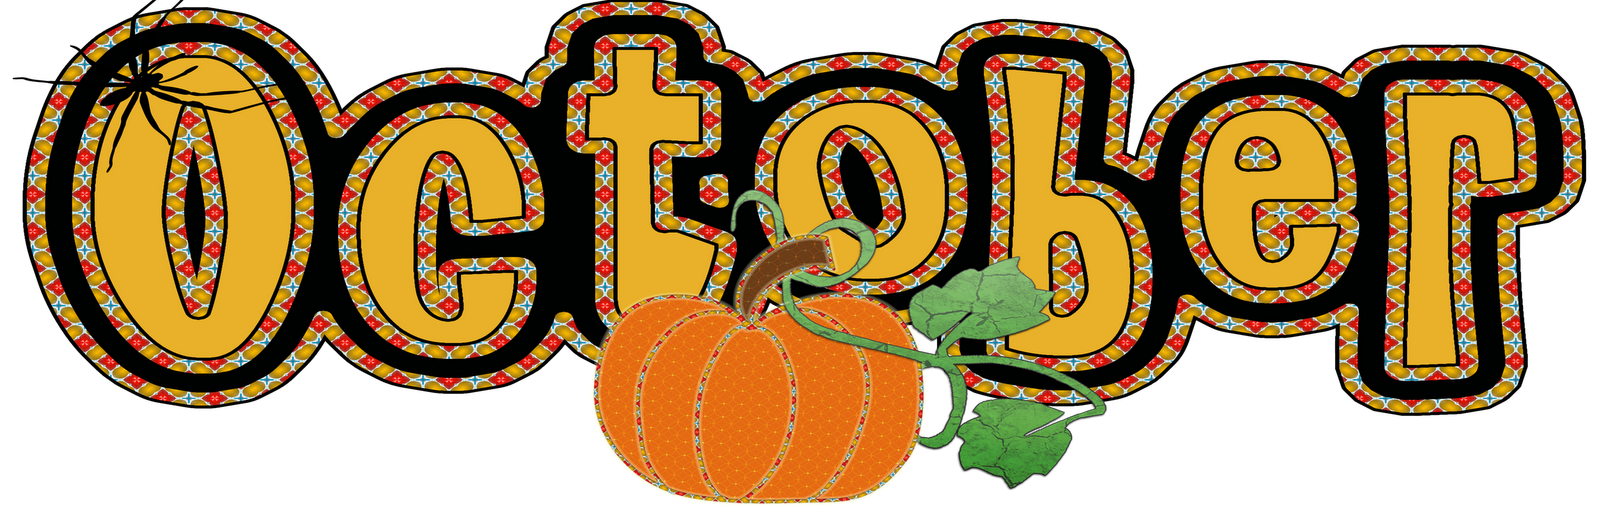 October clipart transparent. Calendar banner royalty free